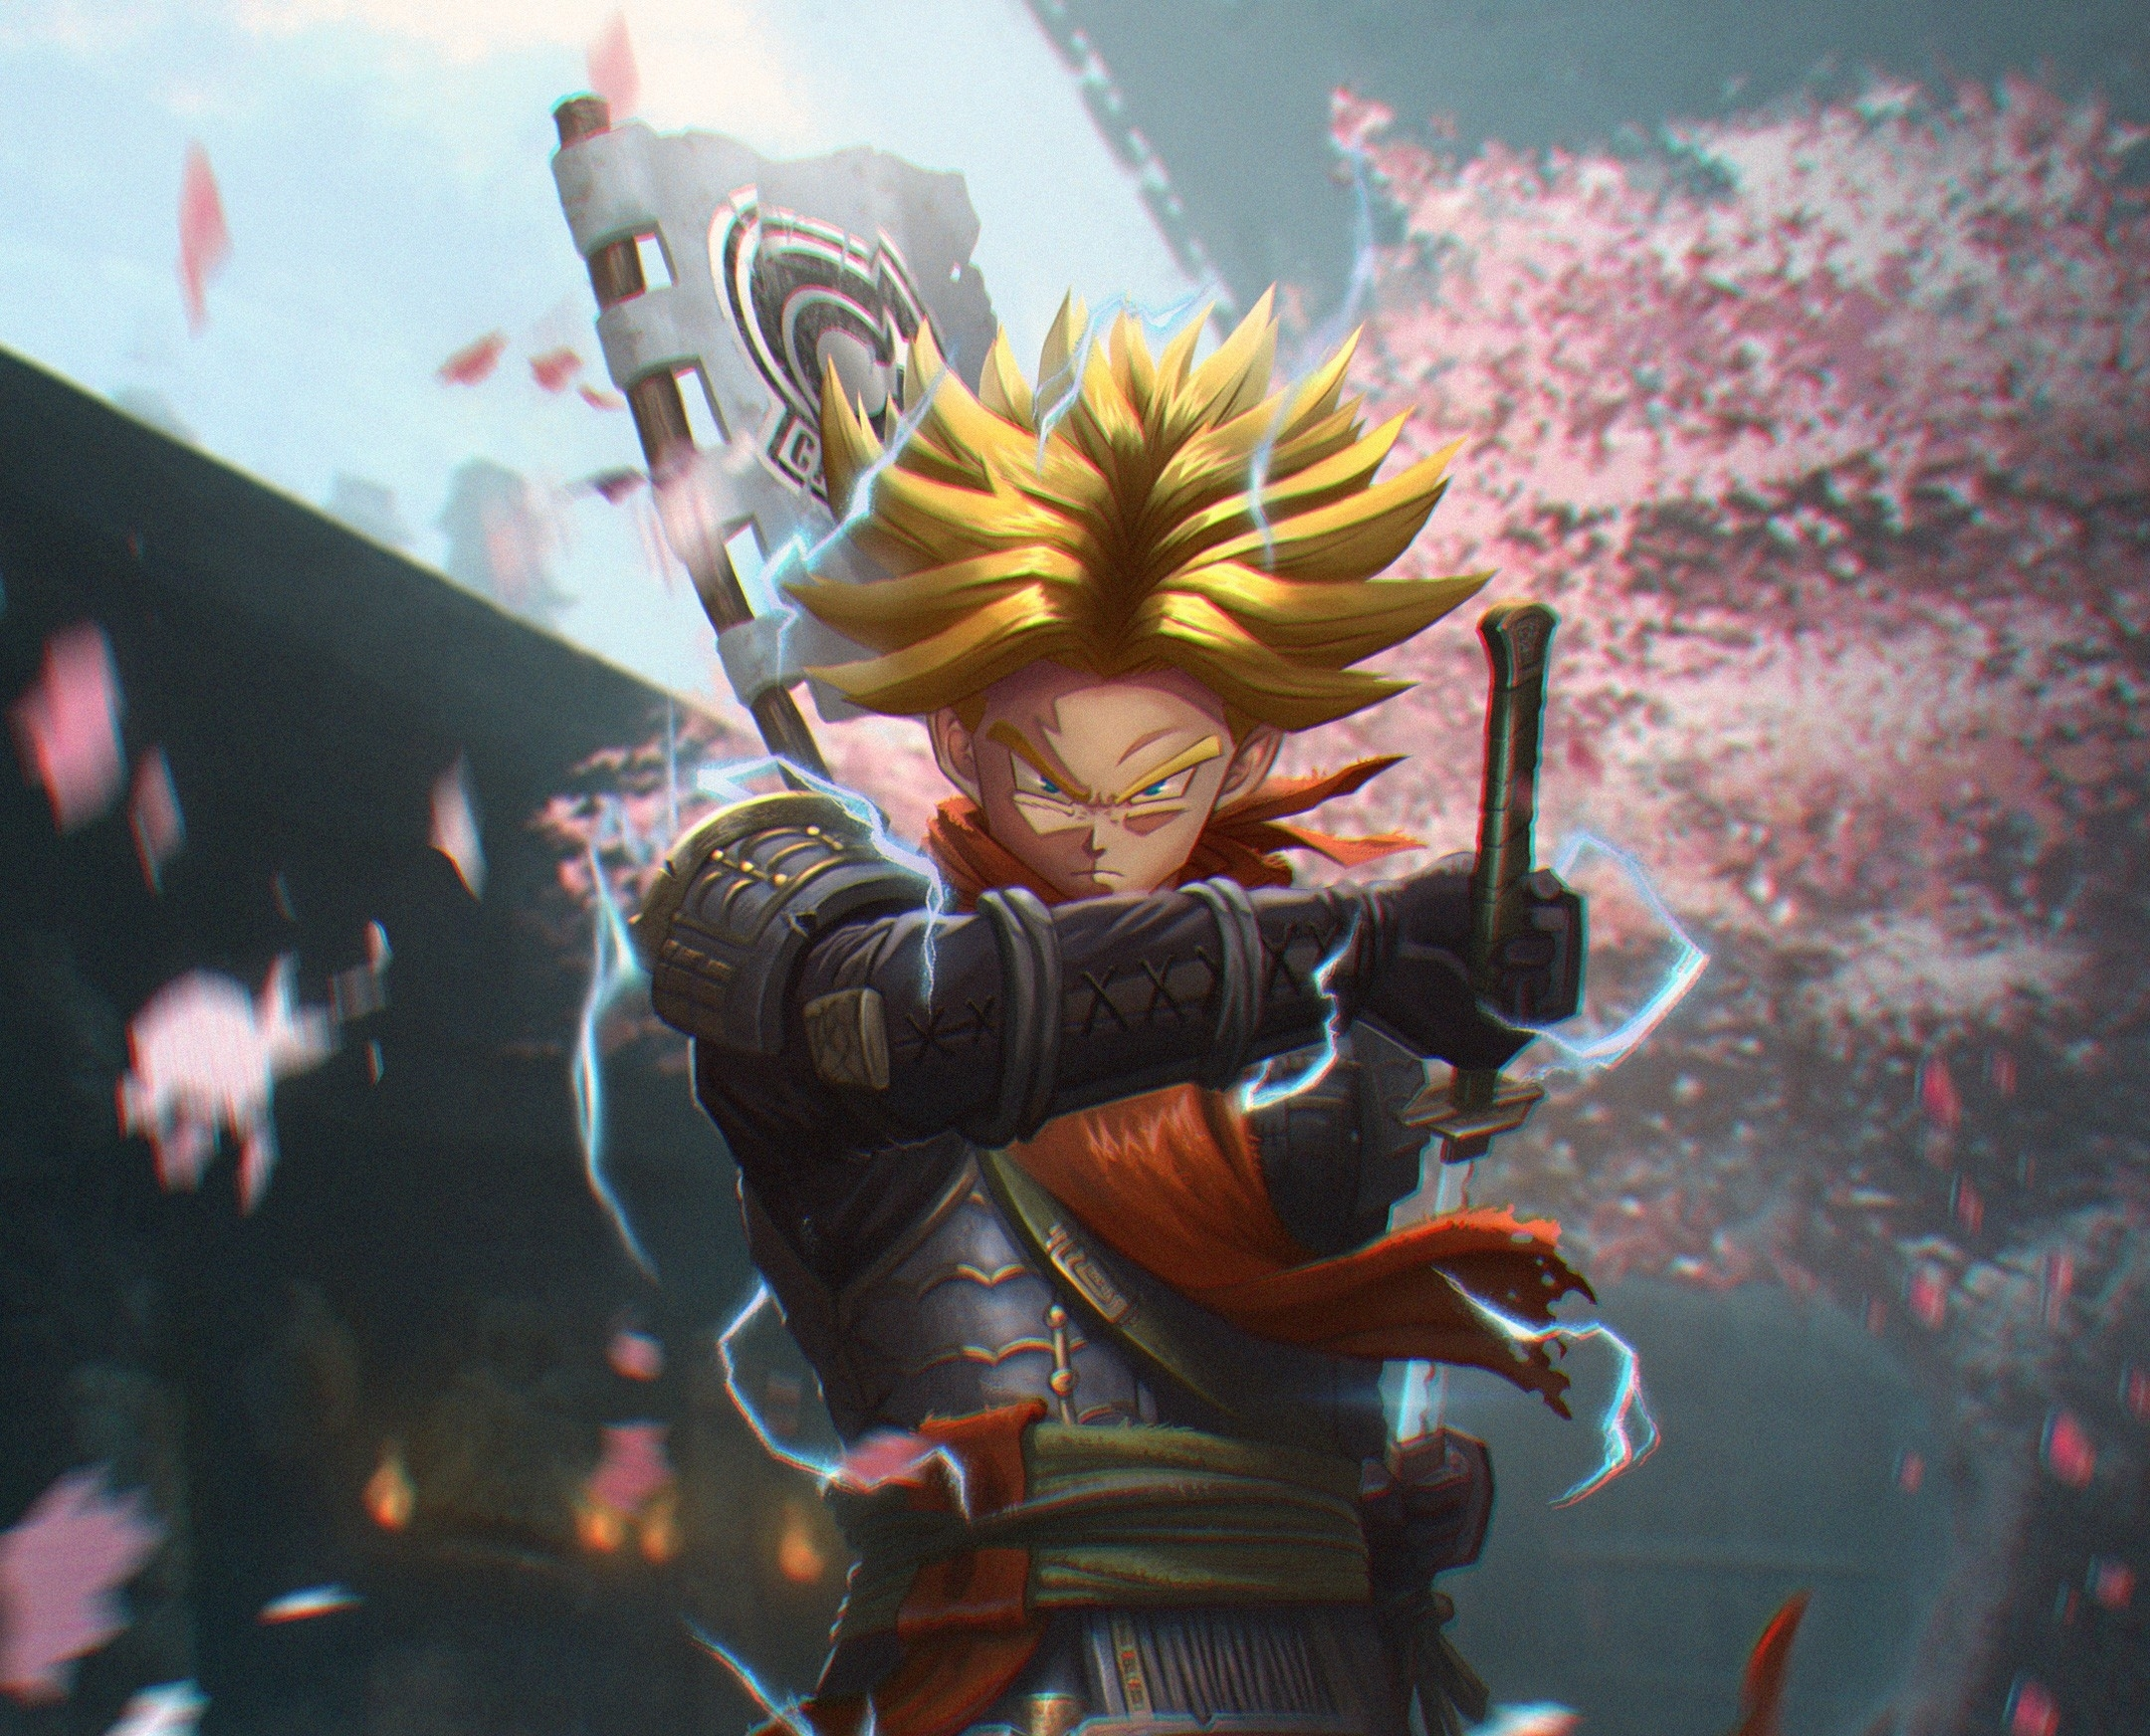 Trunks Dragon Ball Wallpaper Hd Games 4k Wallpapers Images Photos And Background